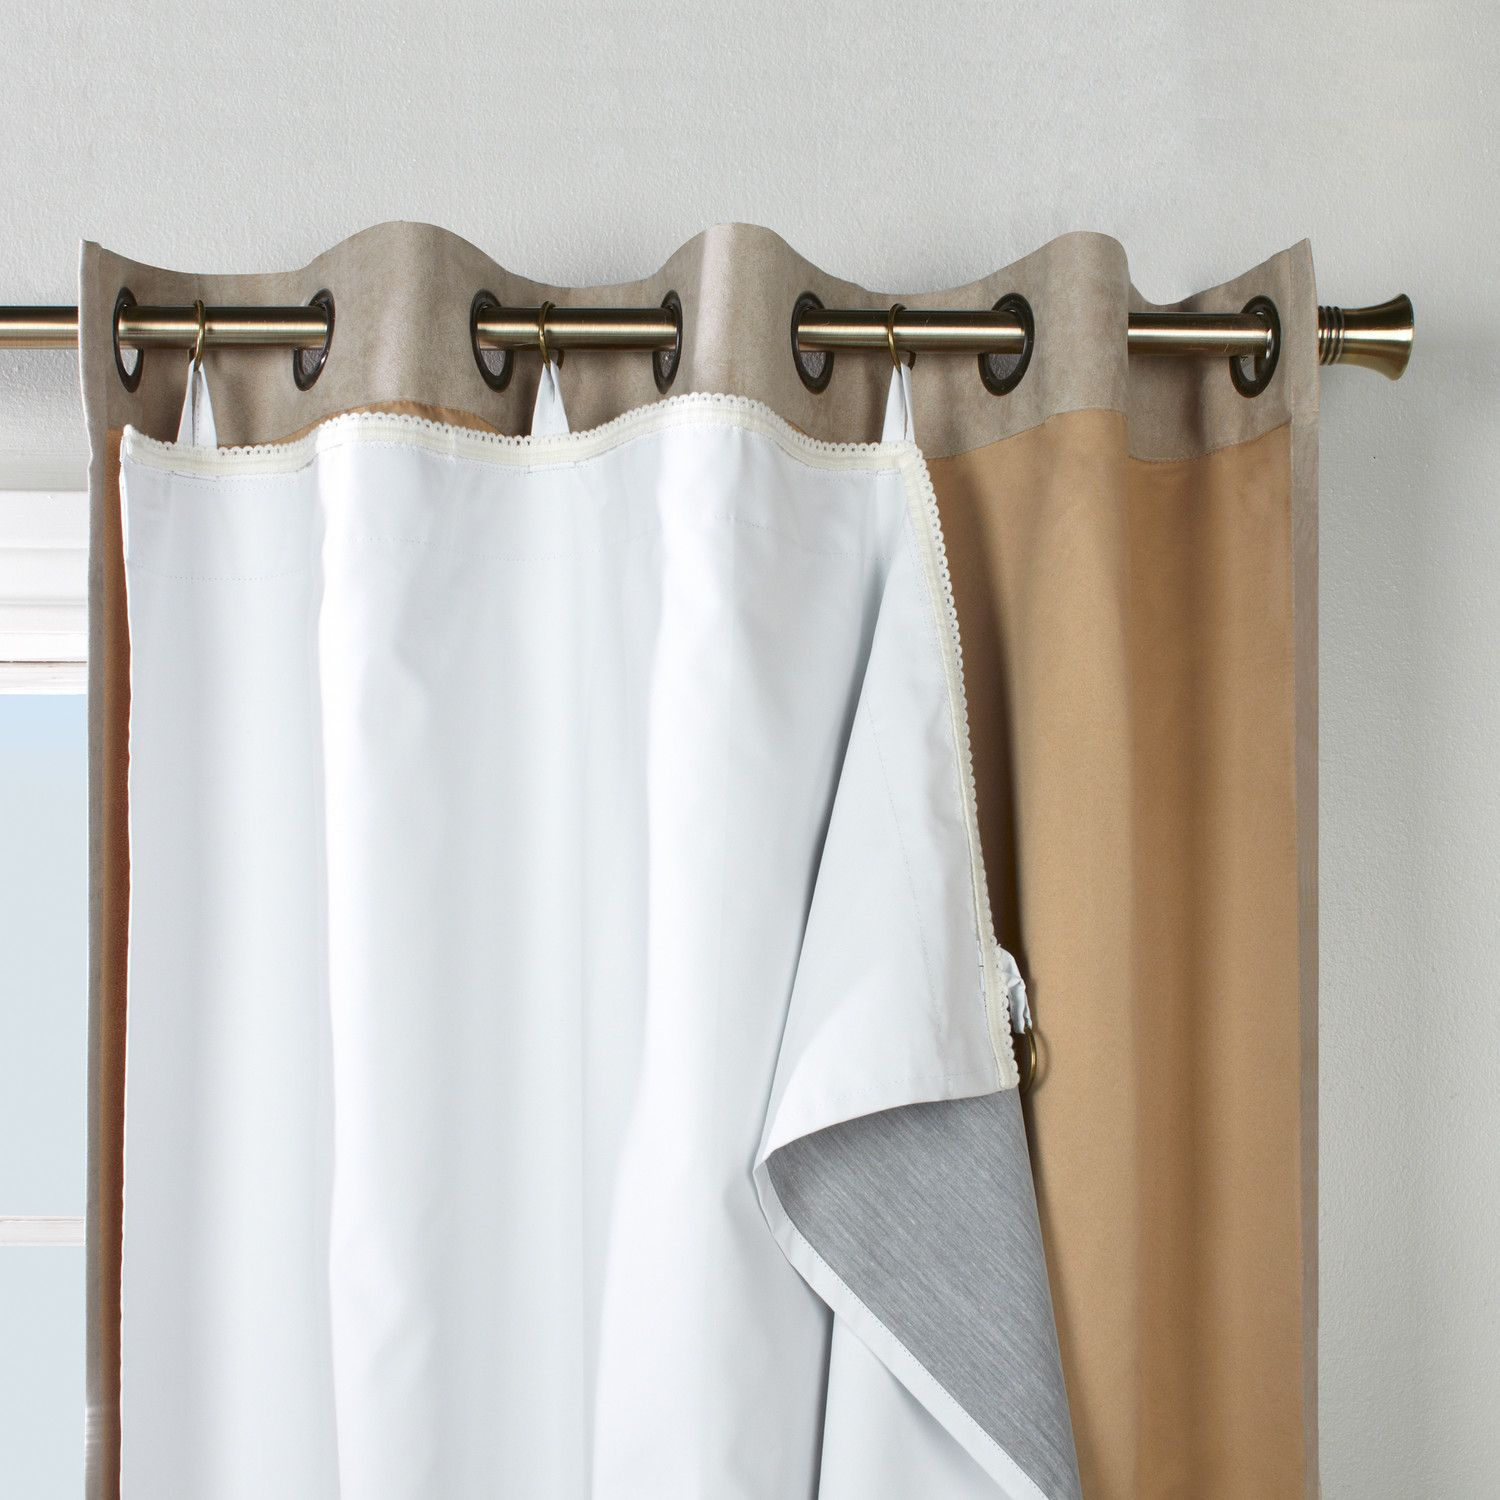 Hanging Lining On Curtain Rod Between Eyelet Grommets